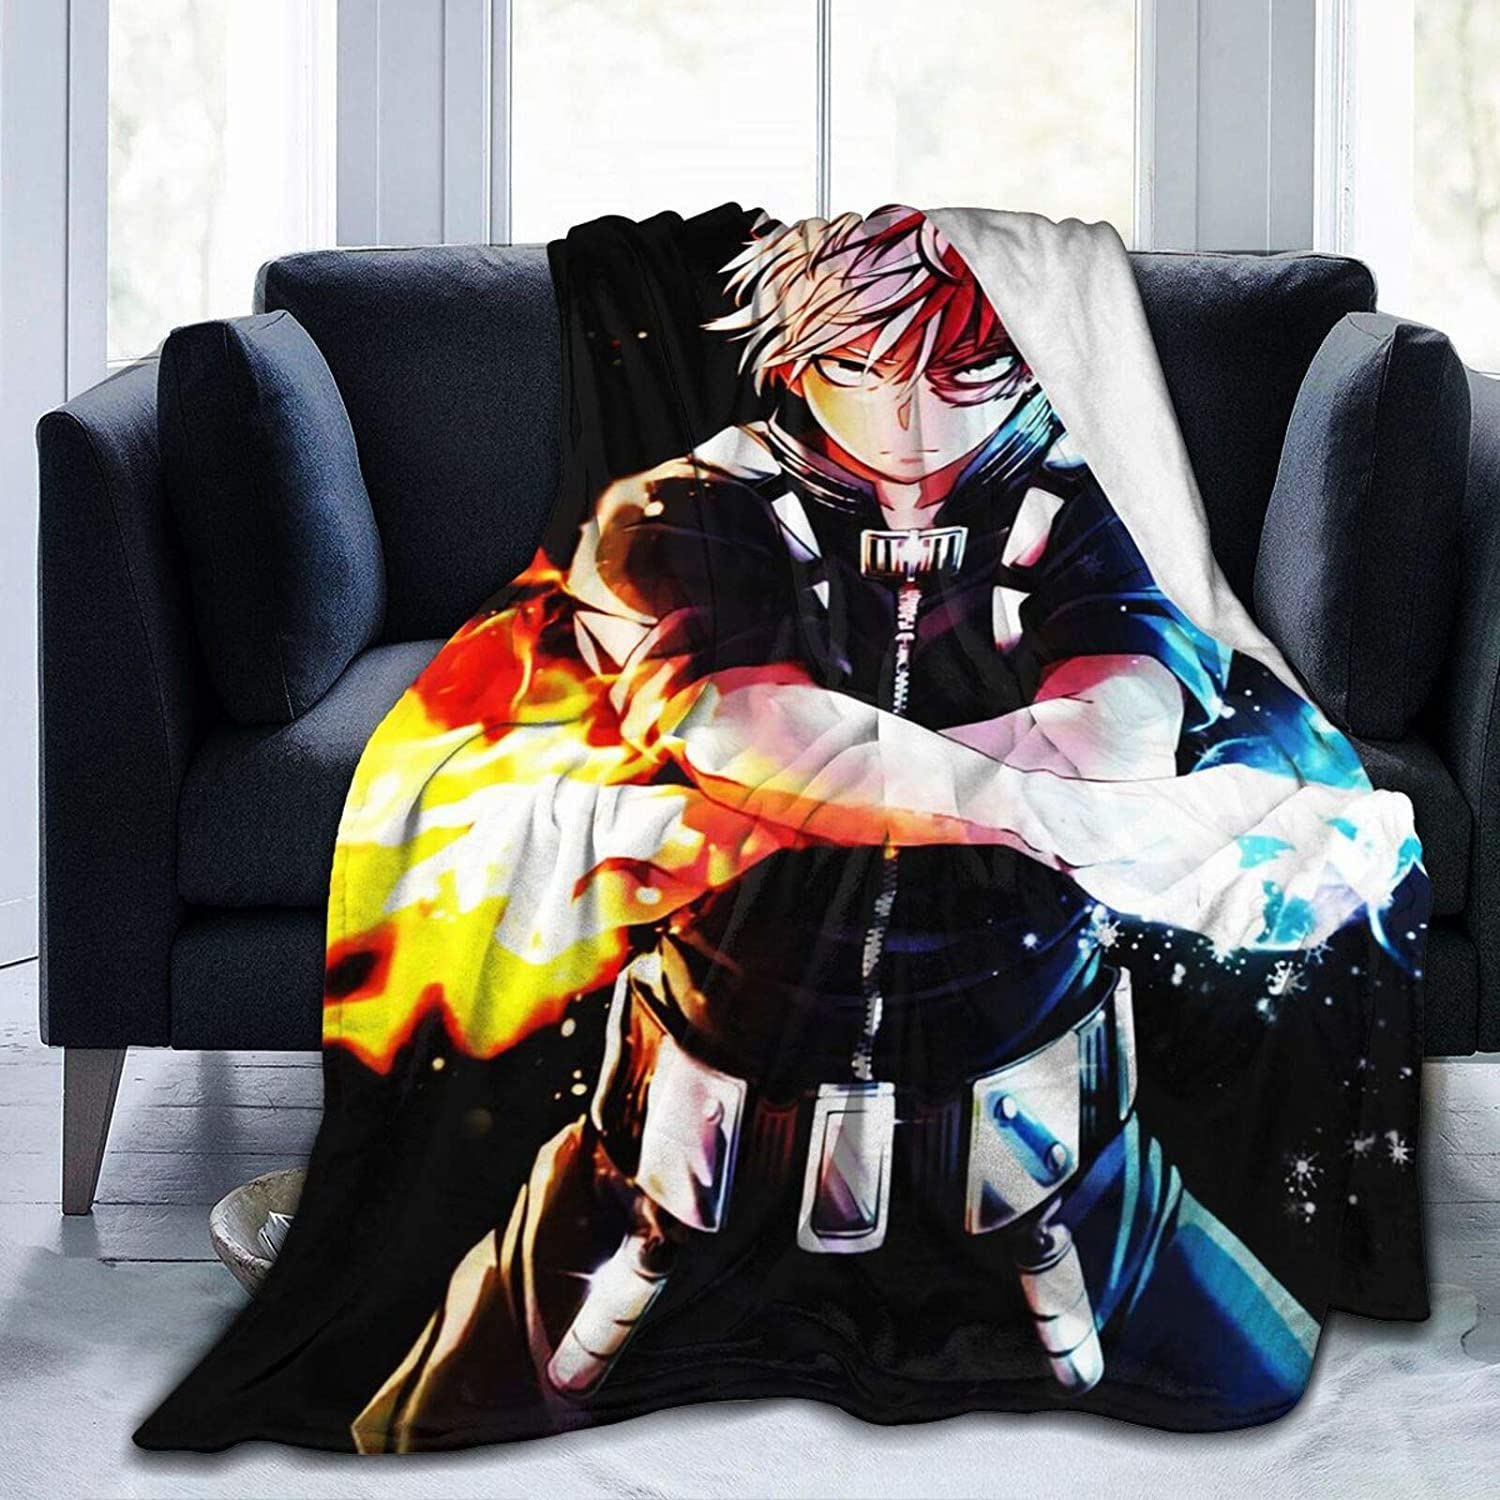 Blankets Throws My Hero Academia Fuzzy Soft Cartoon Opening large release sale Anime Plush Popular popular